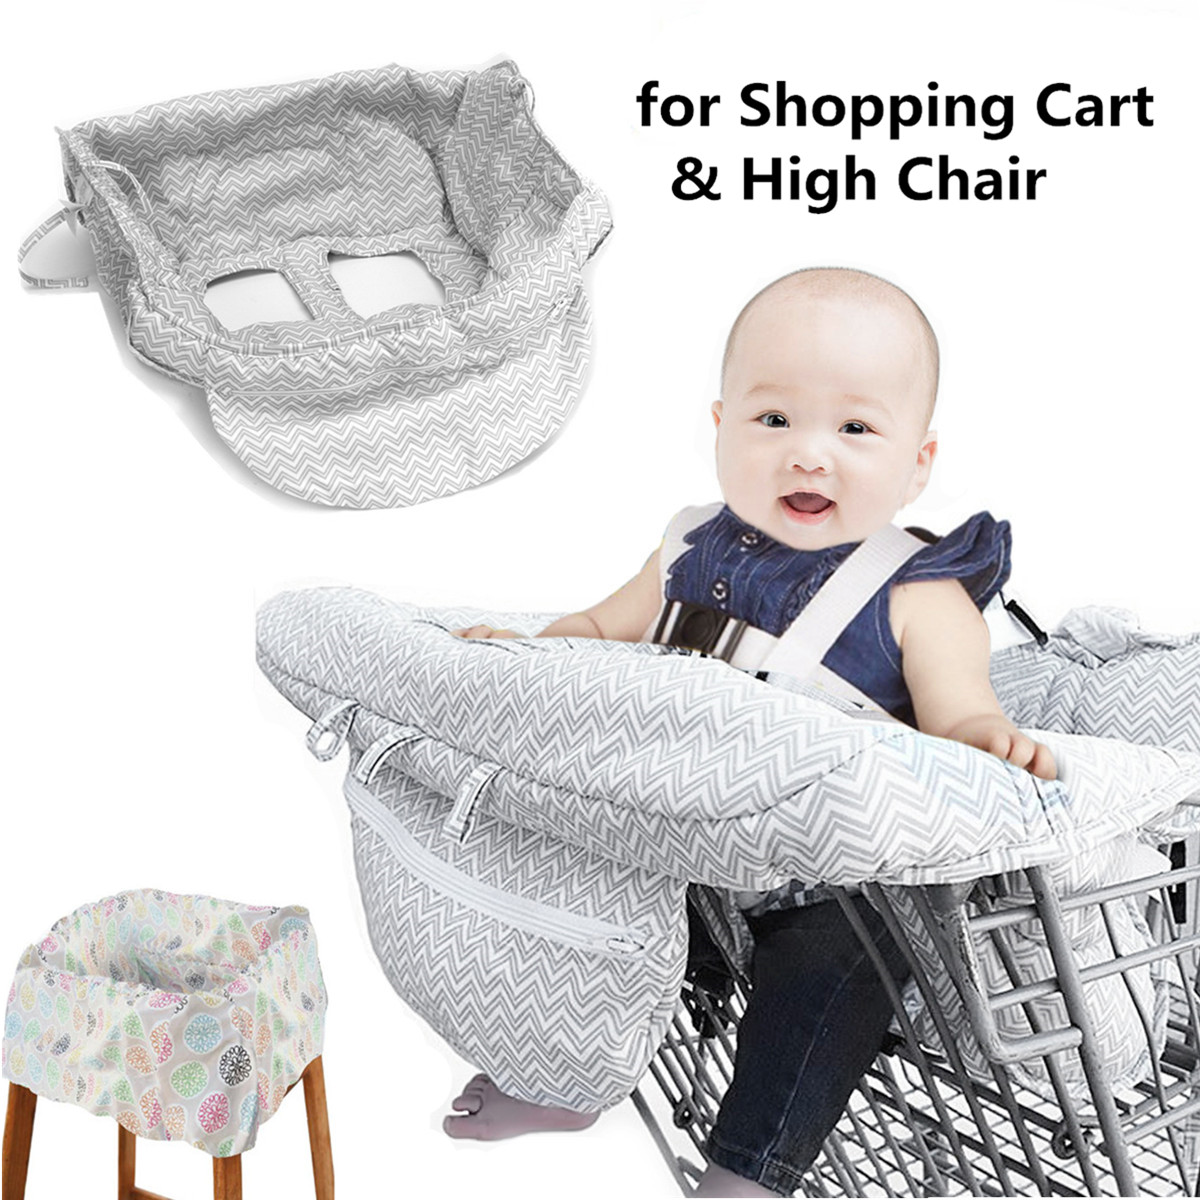 Shopping Cart Seat Cover for Baby Toddler Portable Foldable Storage Full Safety Harness Baby Trolley Highchair Cover 2-in-1 Baby Shopping Trolley Cover Highchair Seat Cushion Machine Washable